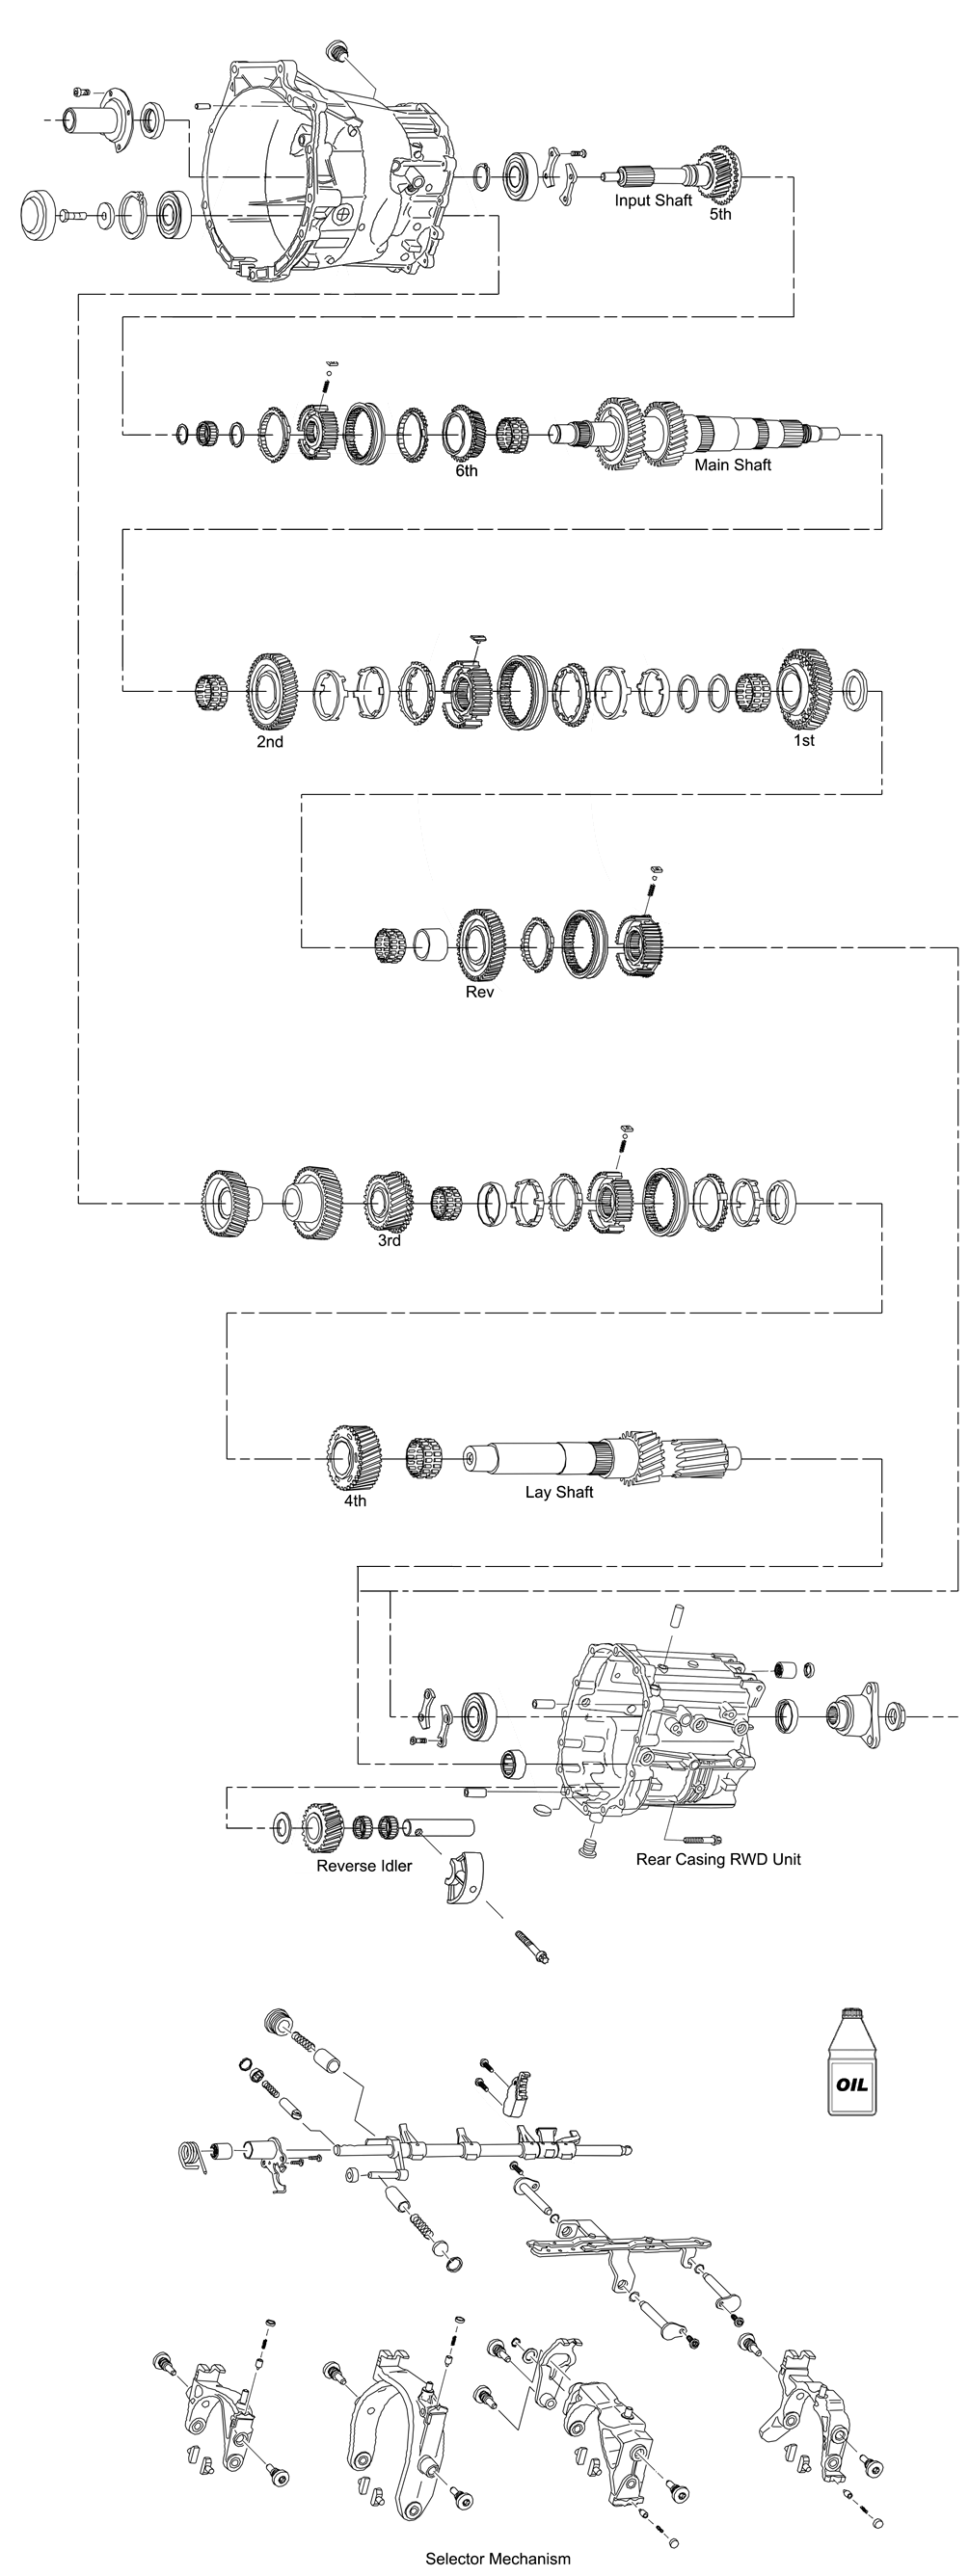 gs6-37dz schematics